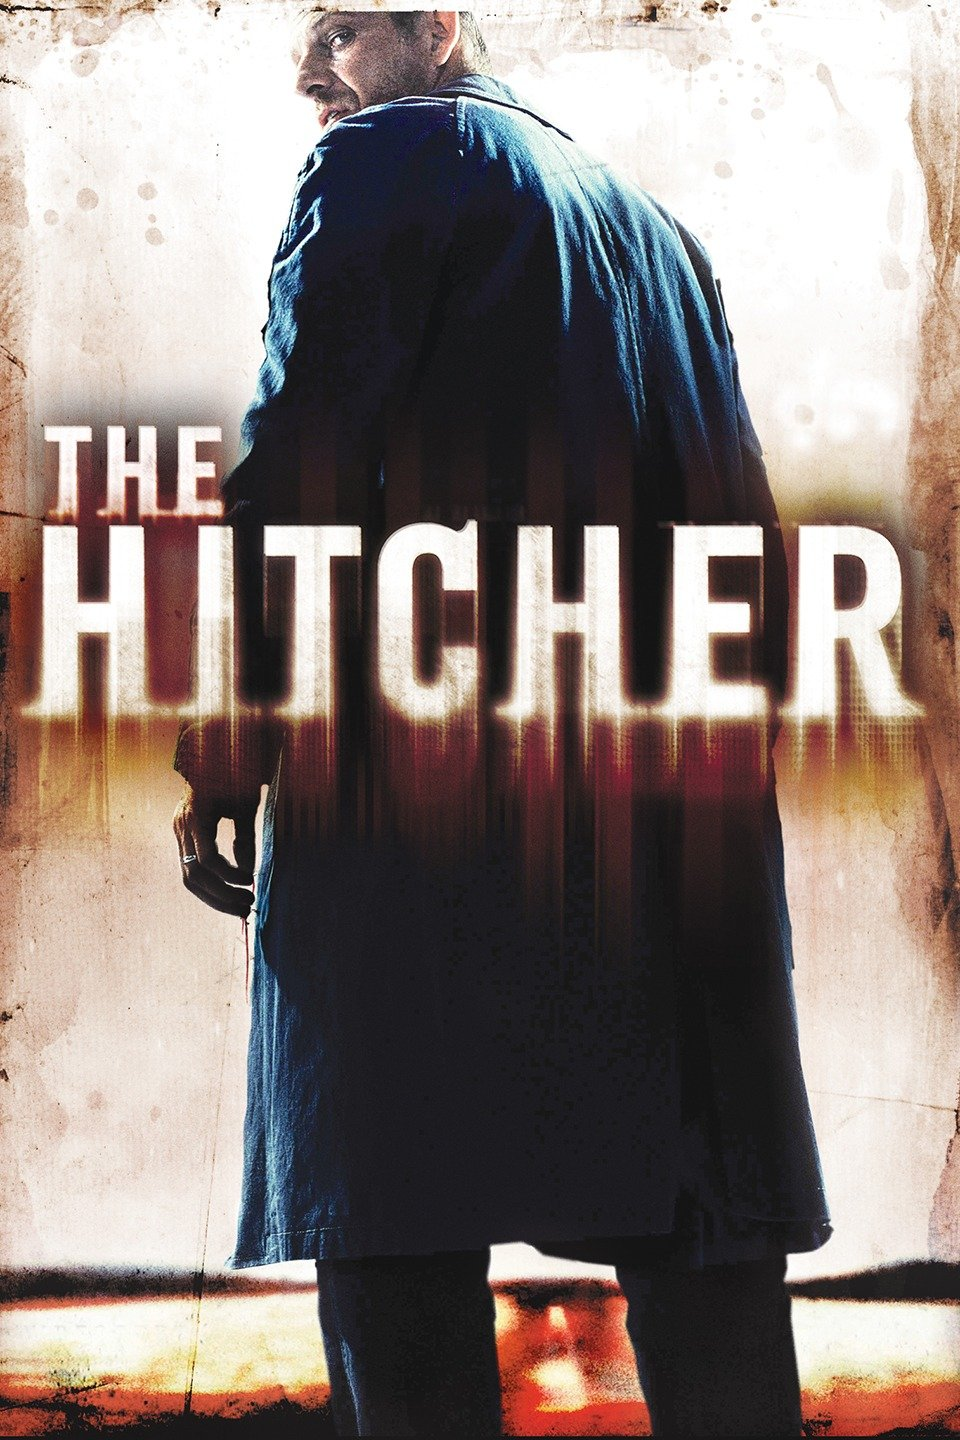 The Hitcher-The Hitcher